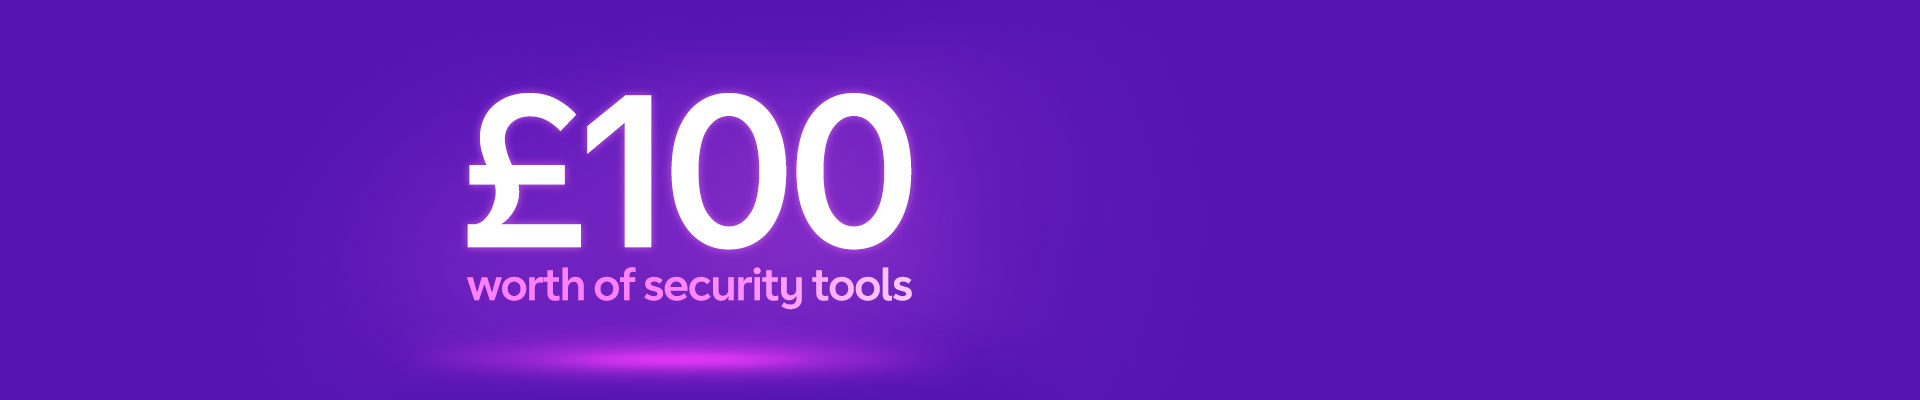 £100 worth of security tools with BT